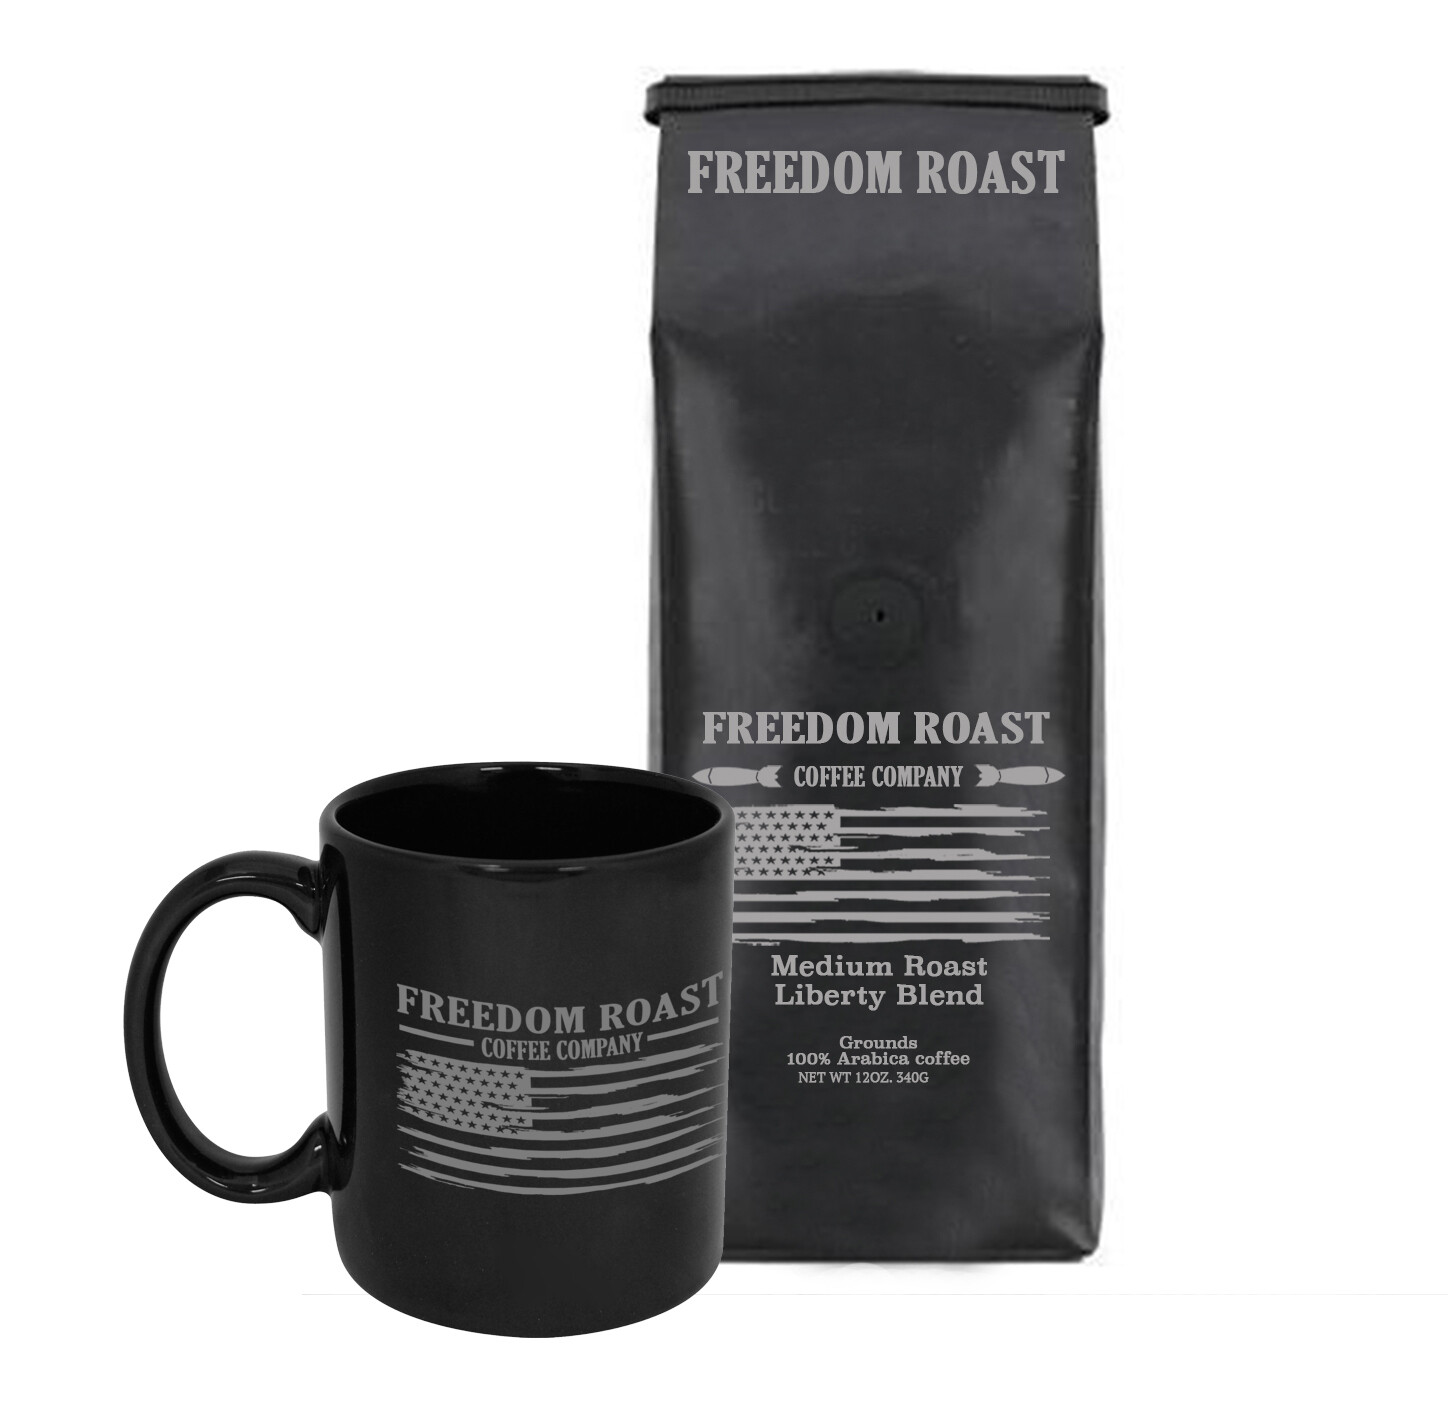 Freedom Roast 12oz. Bag of Medium Liberty Blend & Liberty Flag Coffee Mug